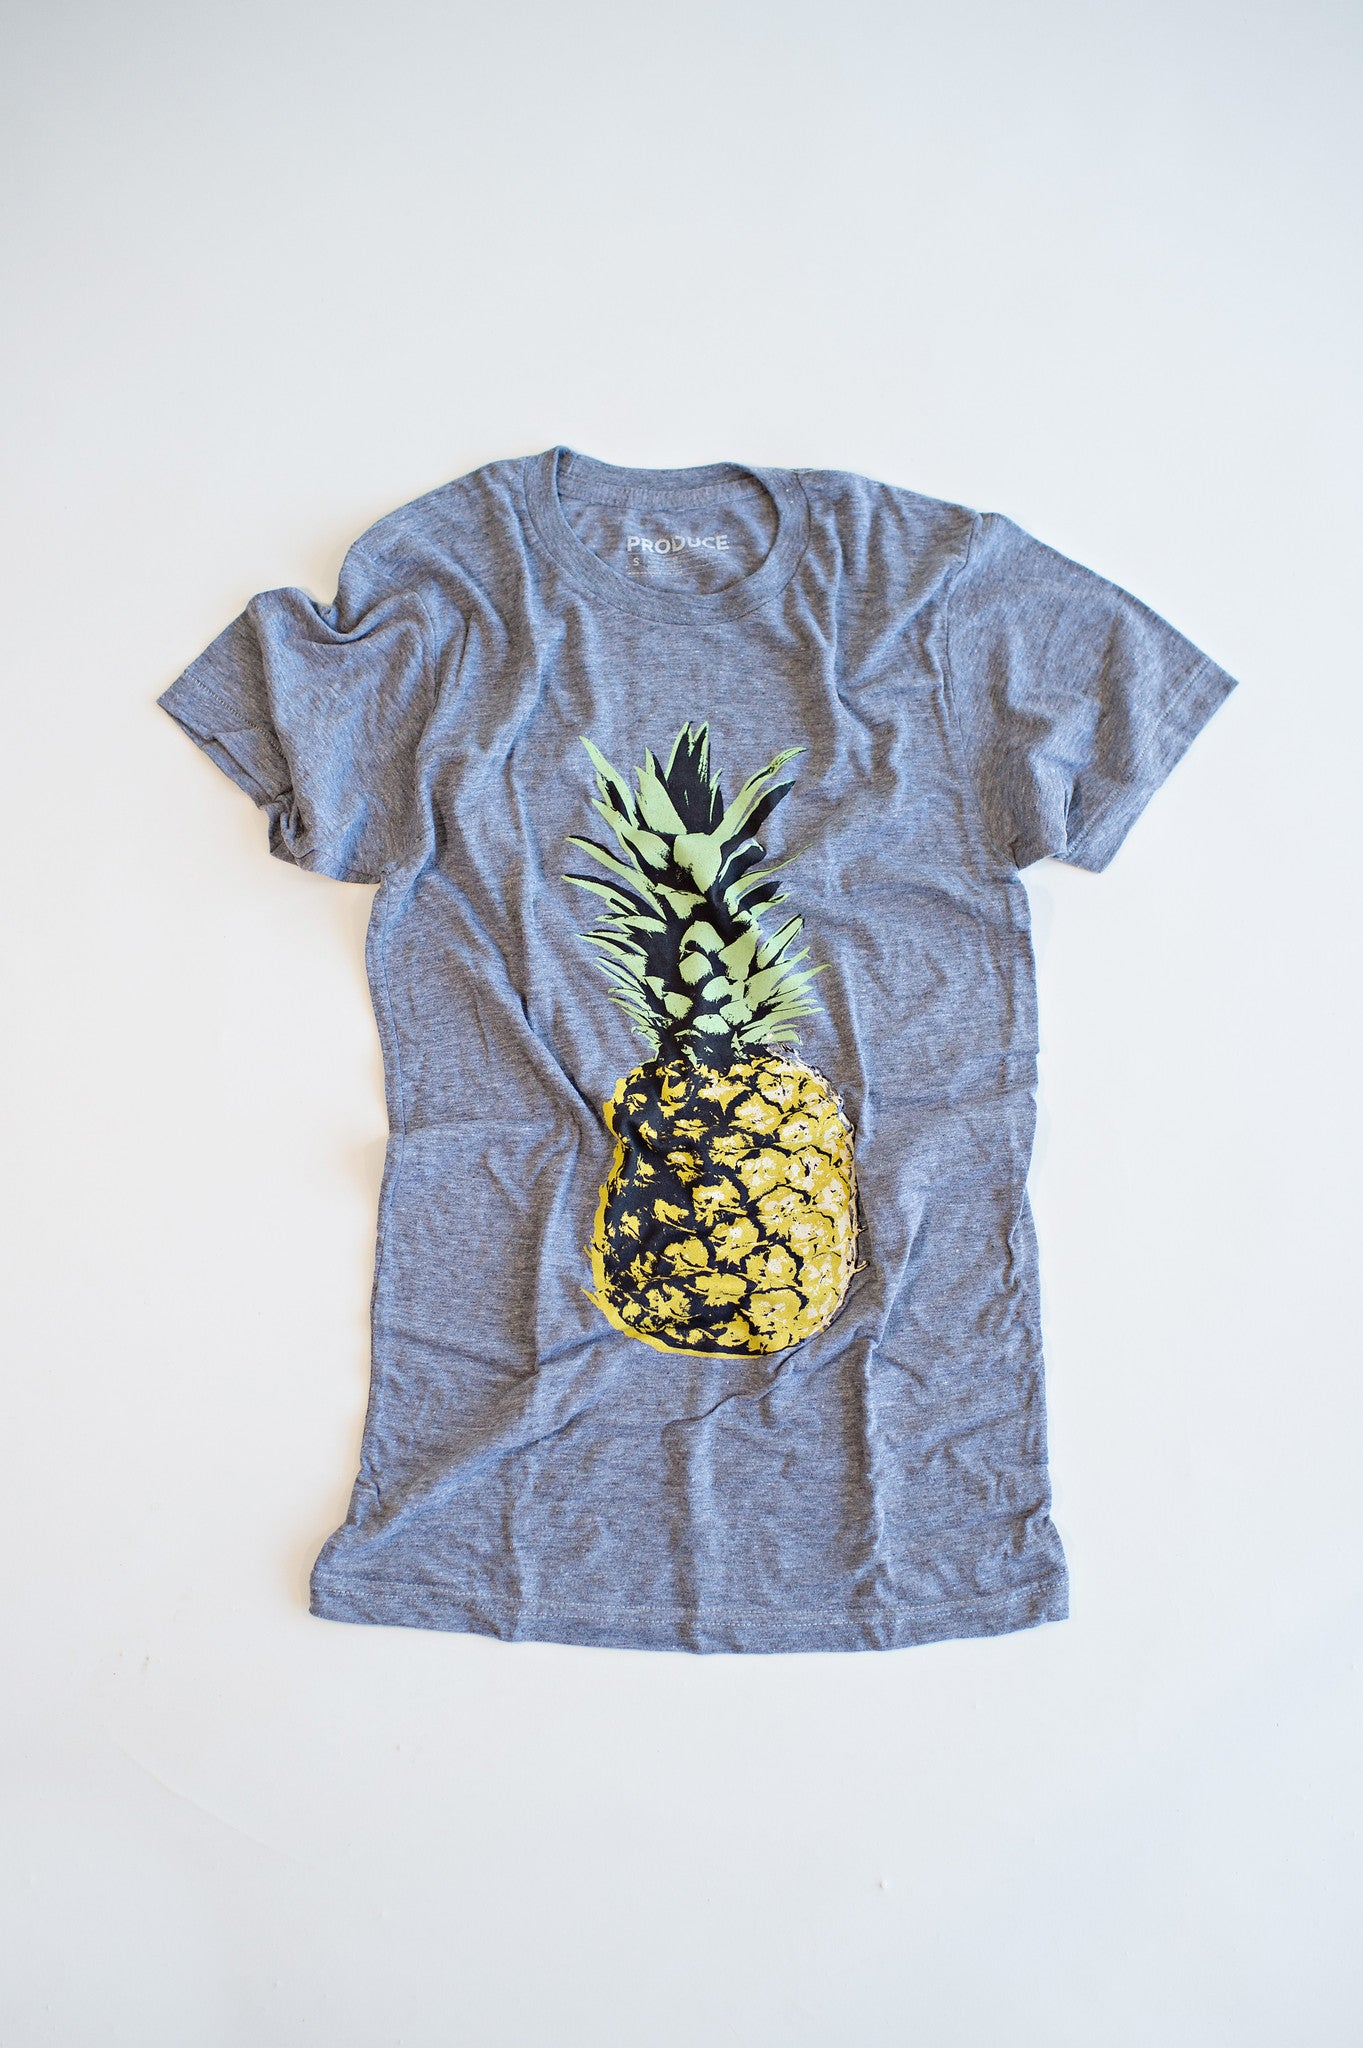 Pineapple (36 weeks) Maternity Shirt